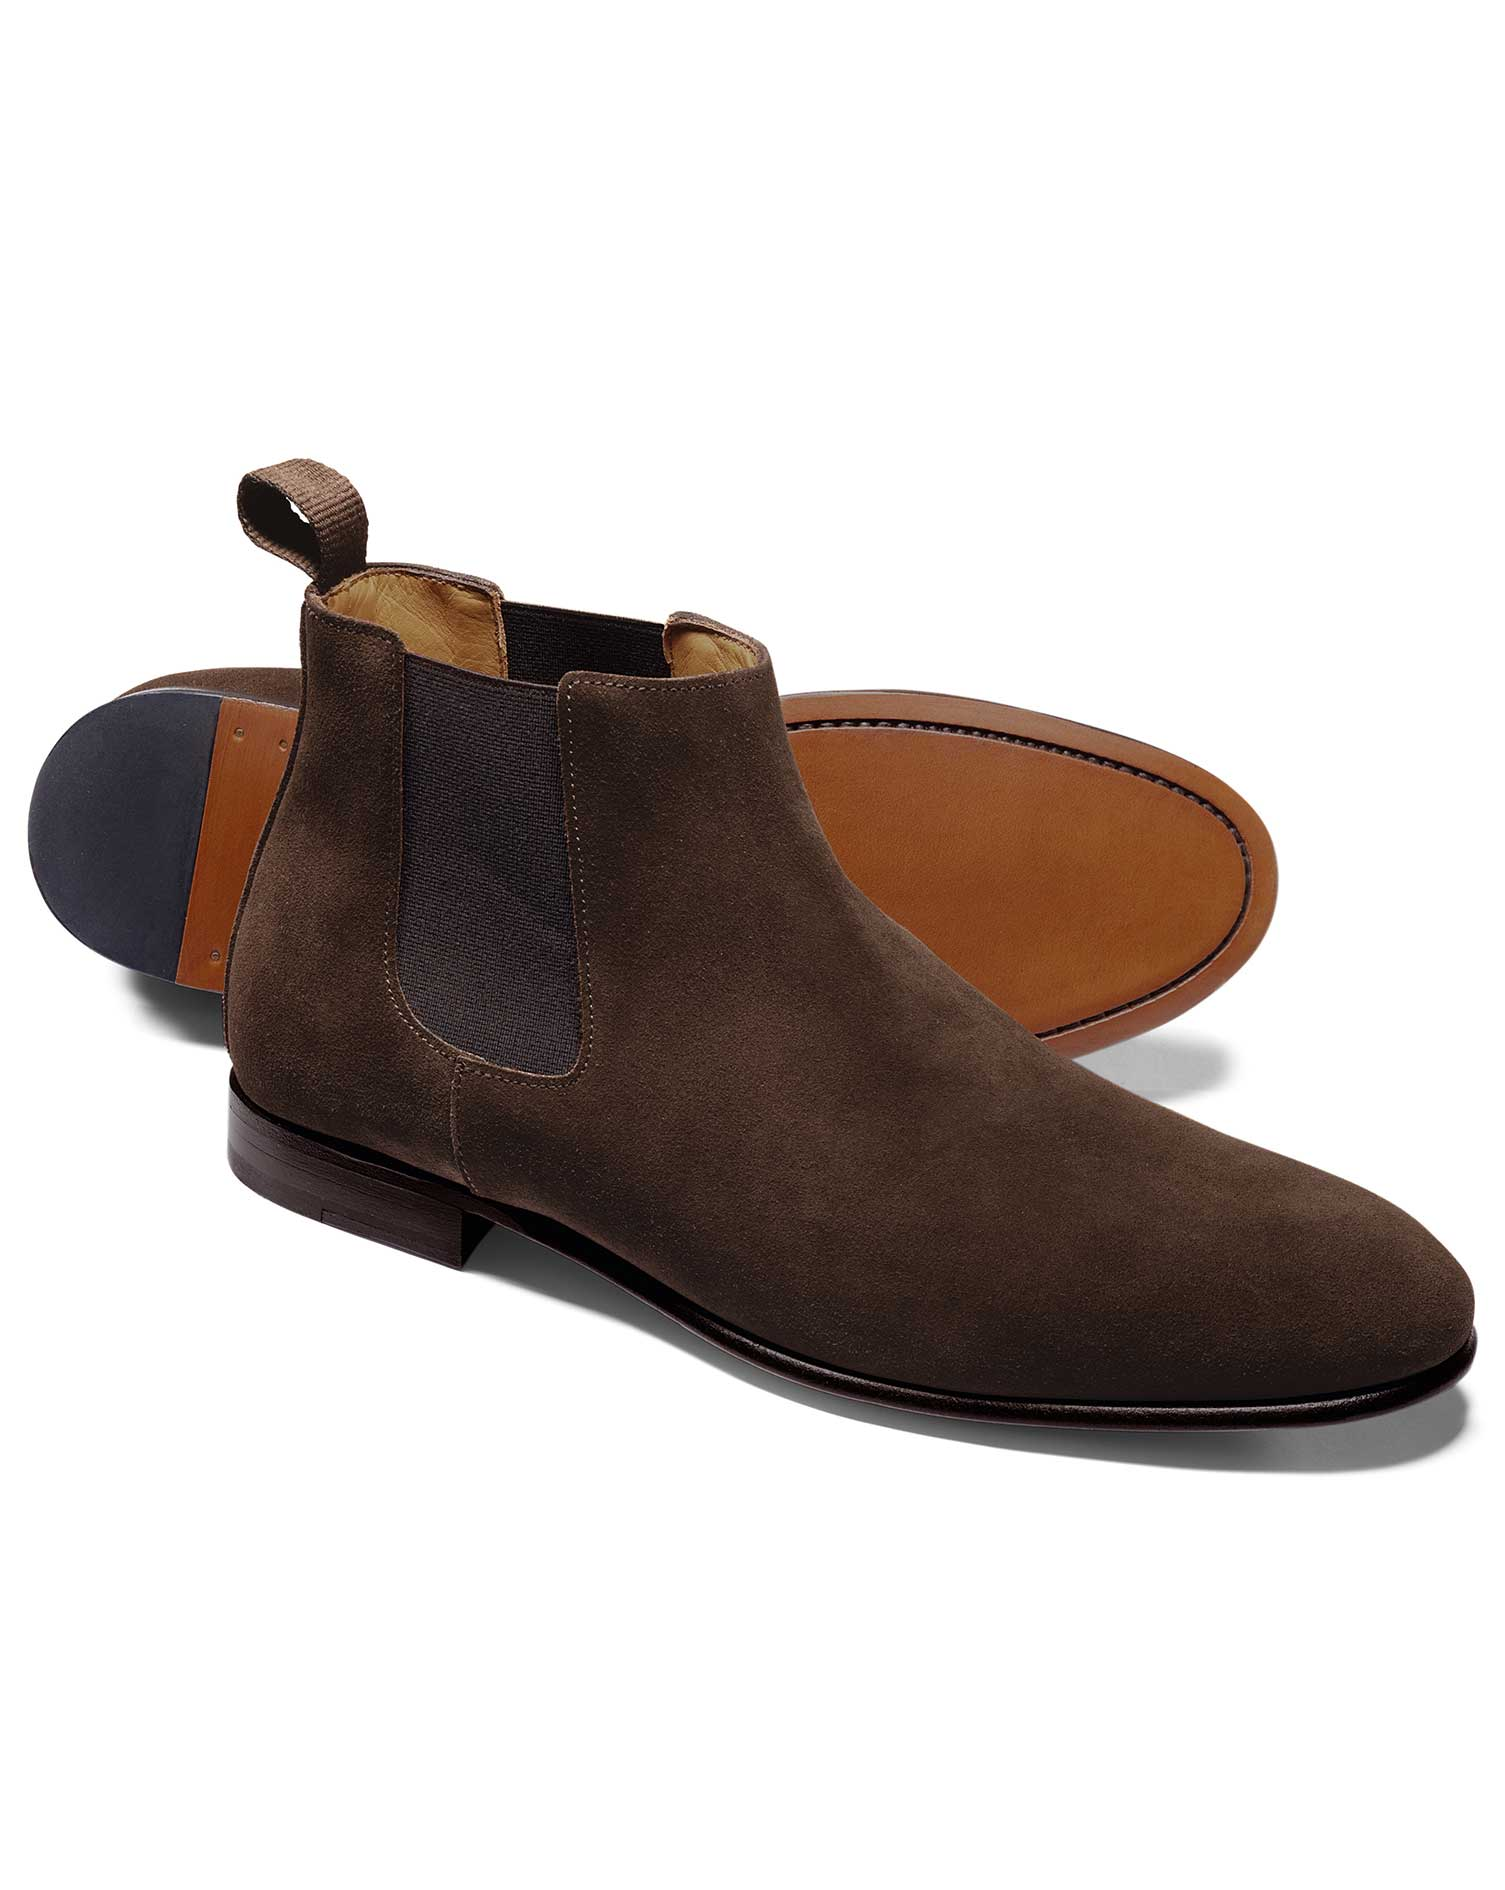 Chocolate Chelsea Boot Size 10 R by Charles Tyrwhitt